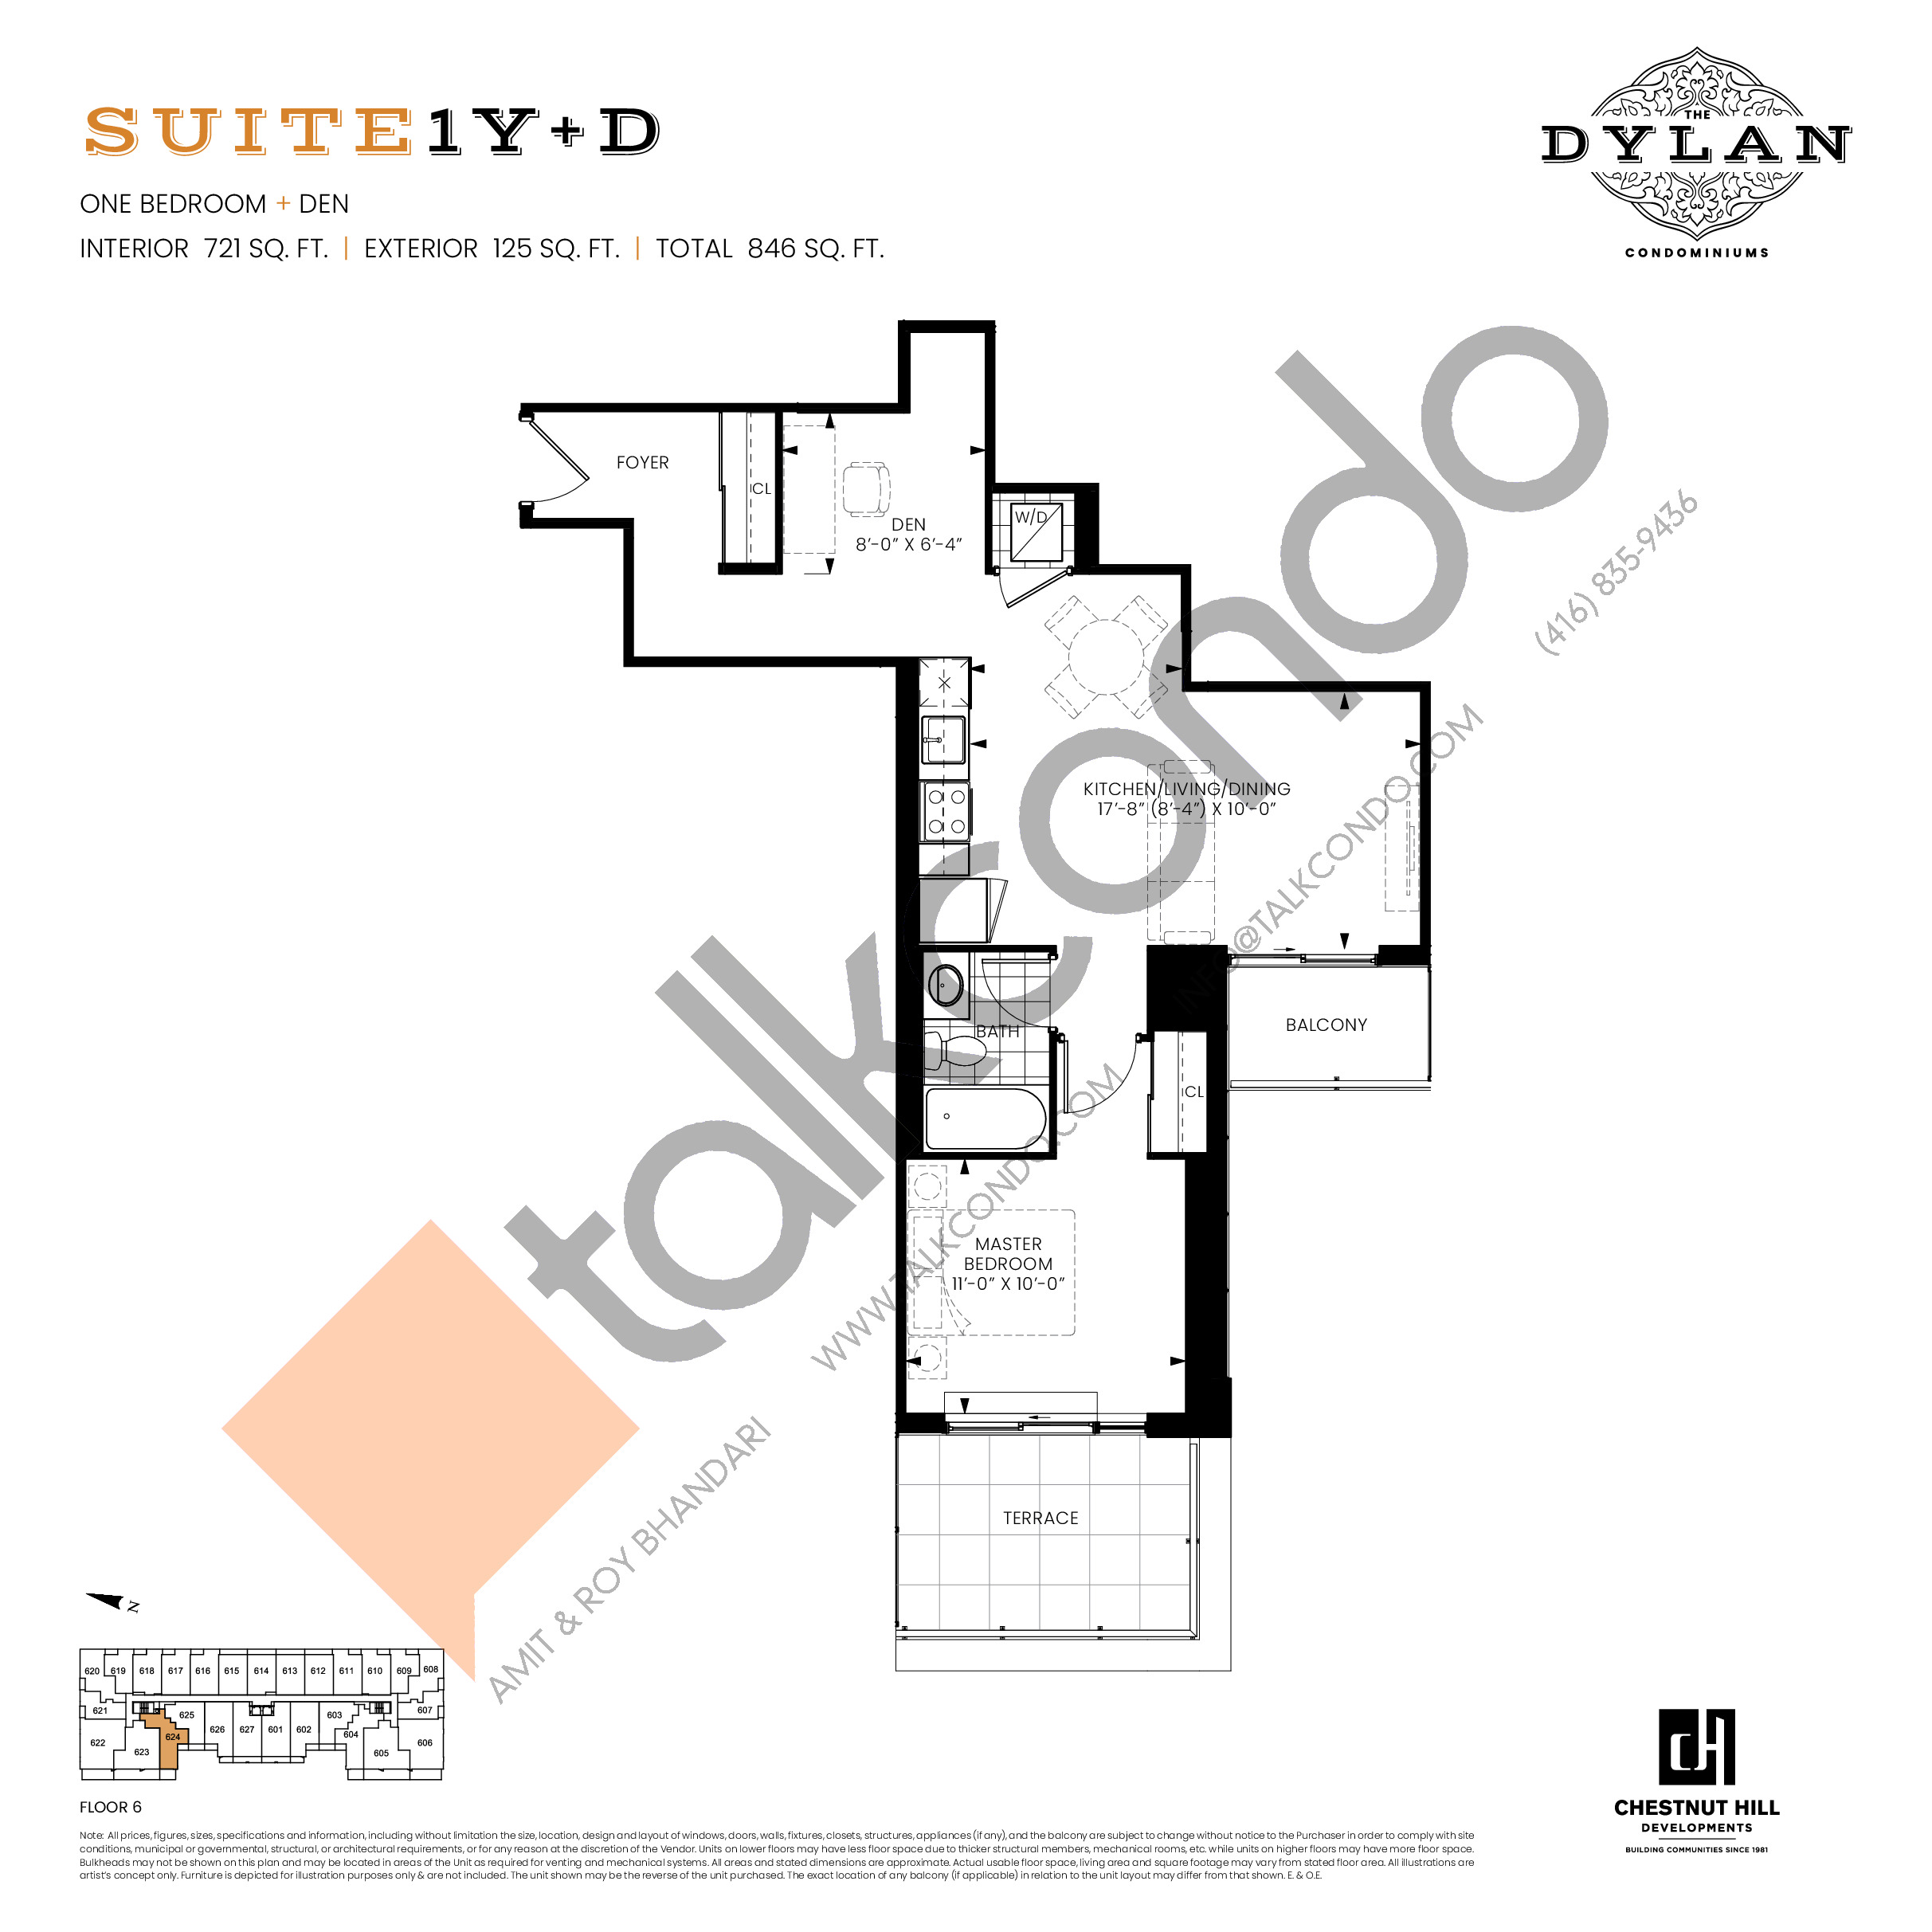 Suite 1Y+D Floor Plan at The Dylan Condos - 721 sq.ft